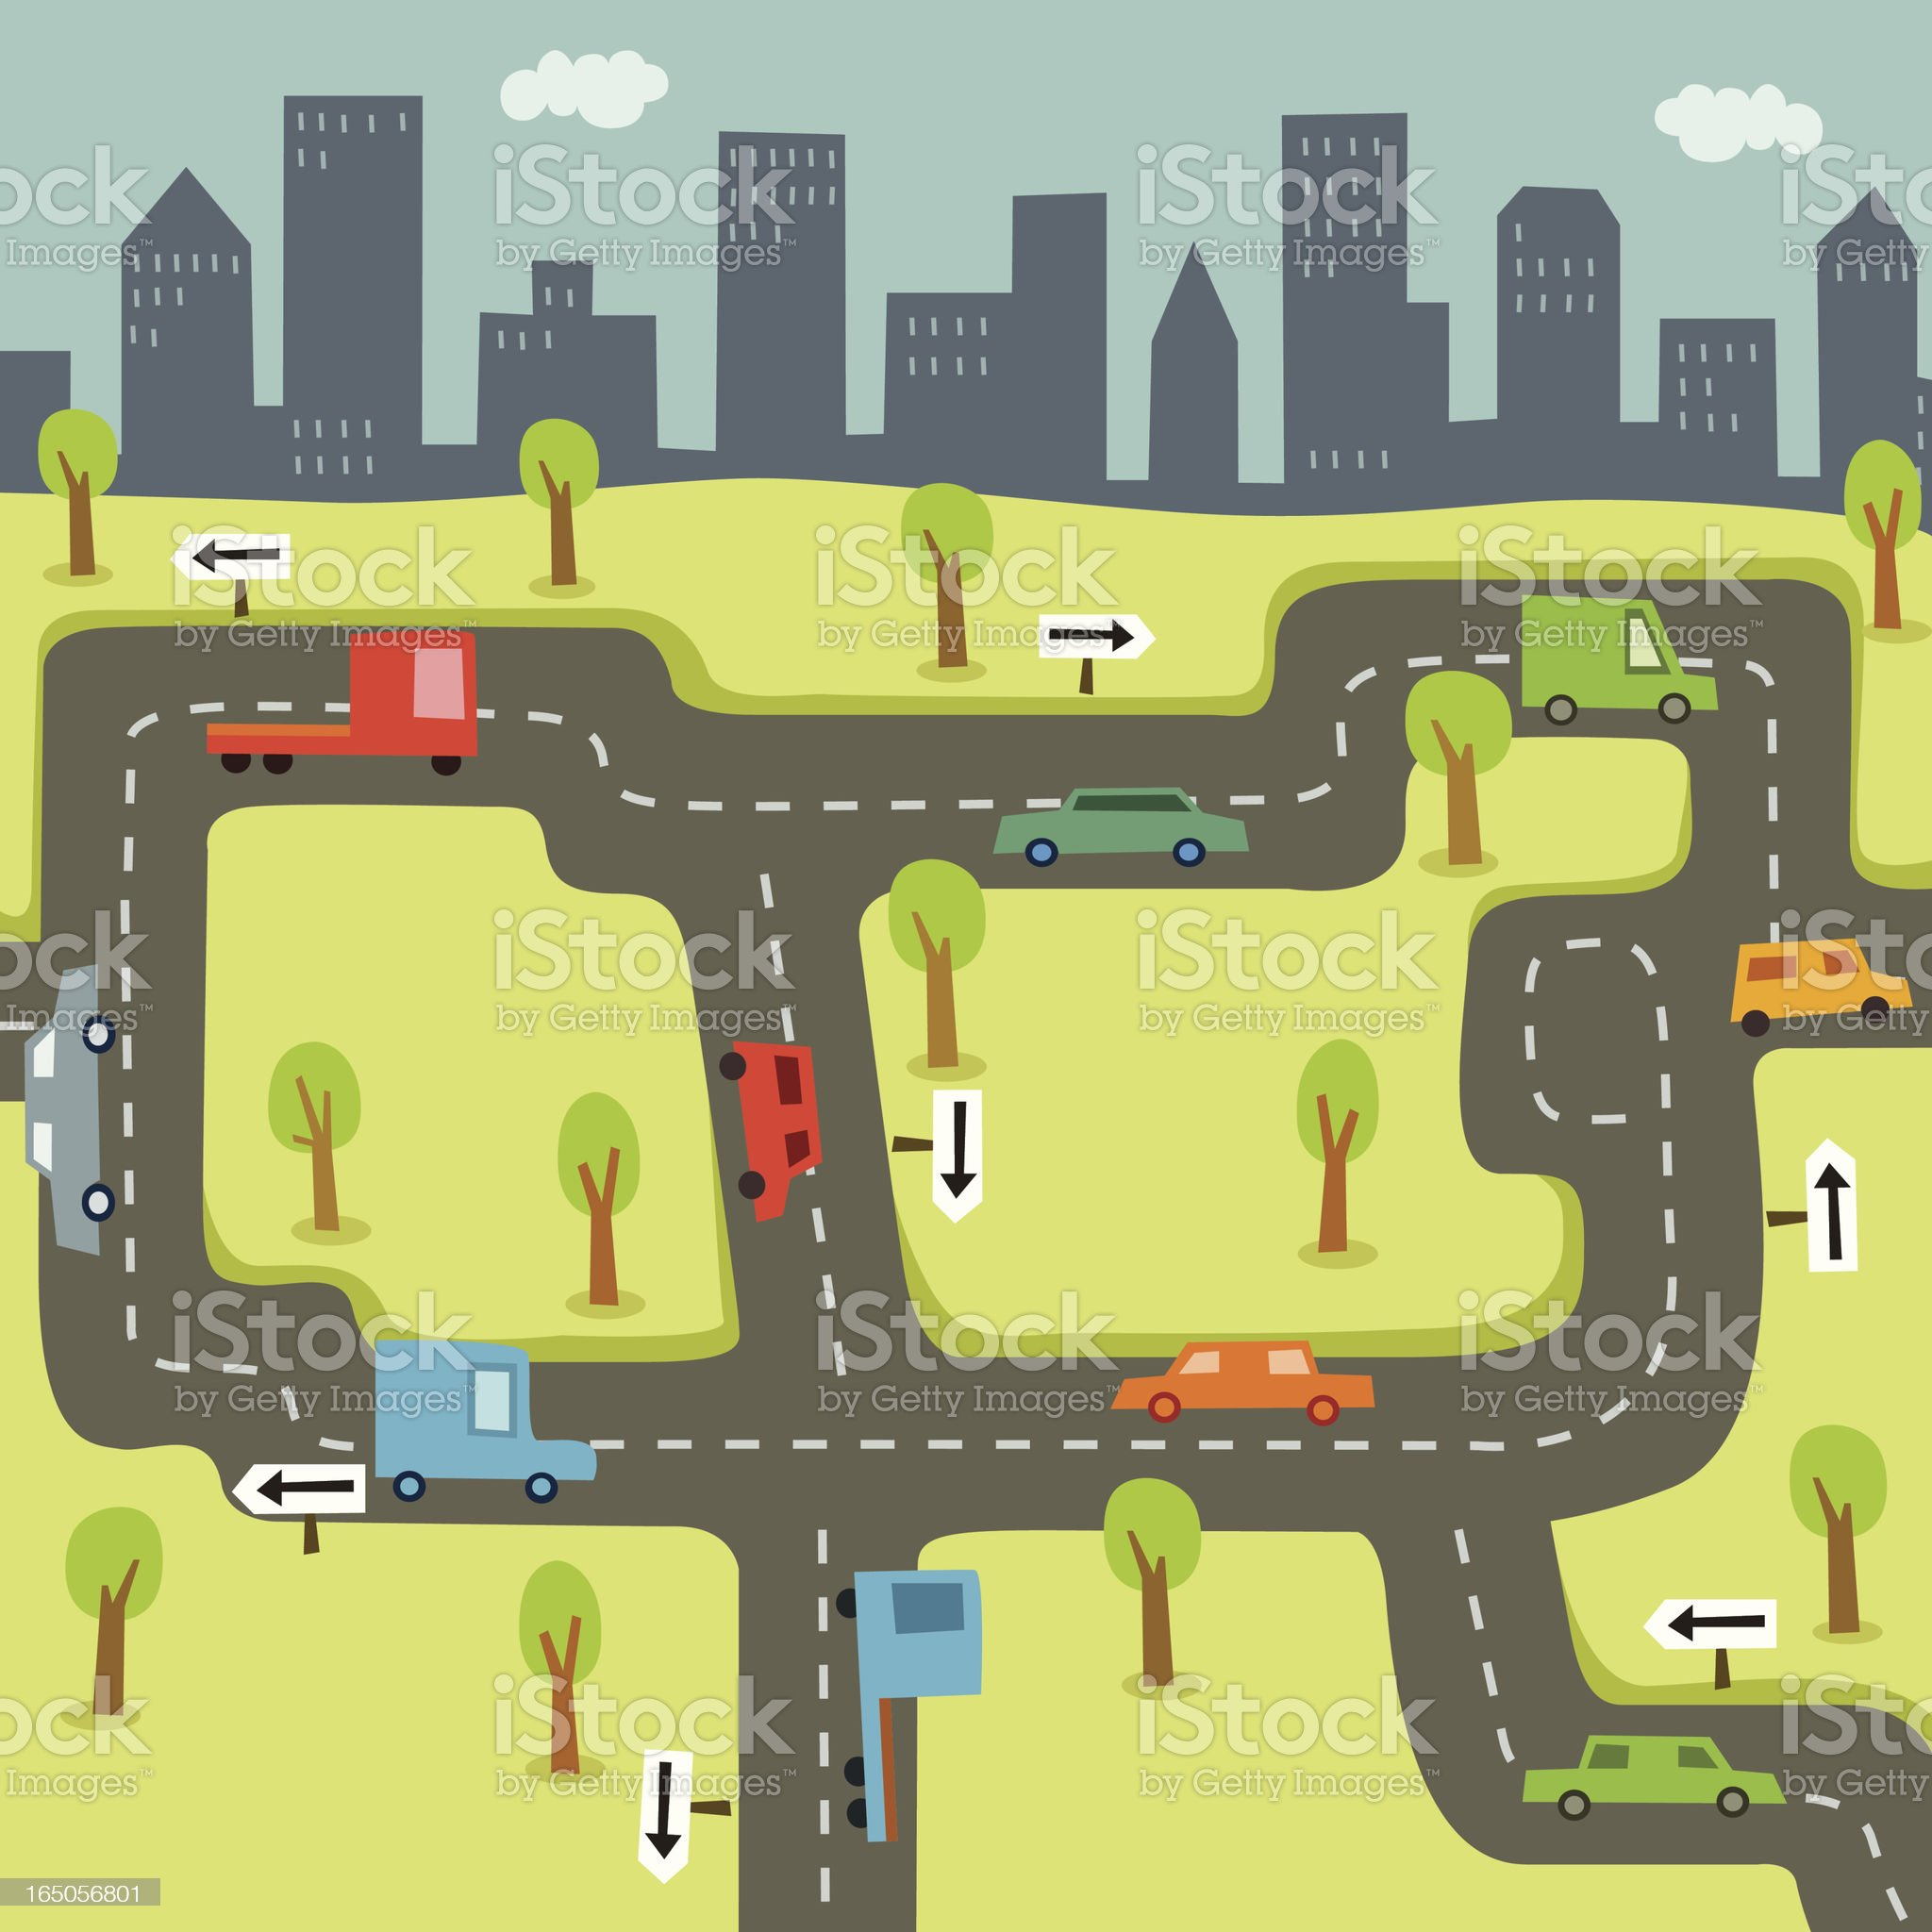 Cars Driving on Roads with City Skyline Background royalty-free stock vector art